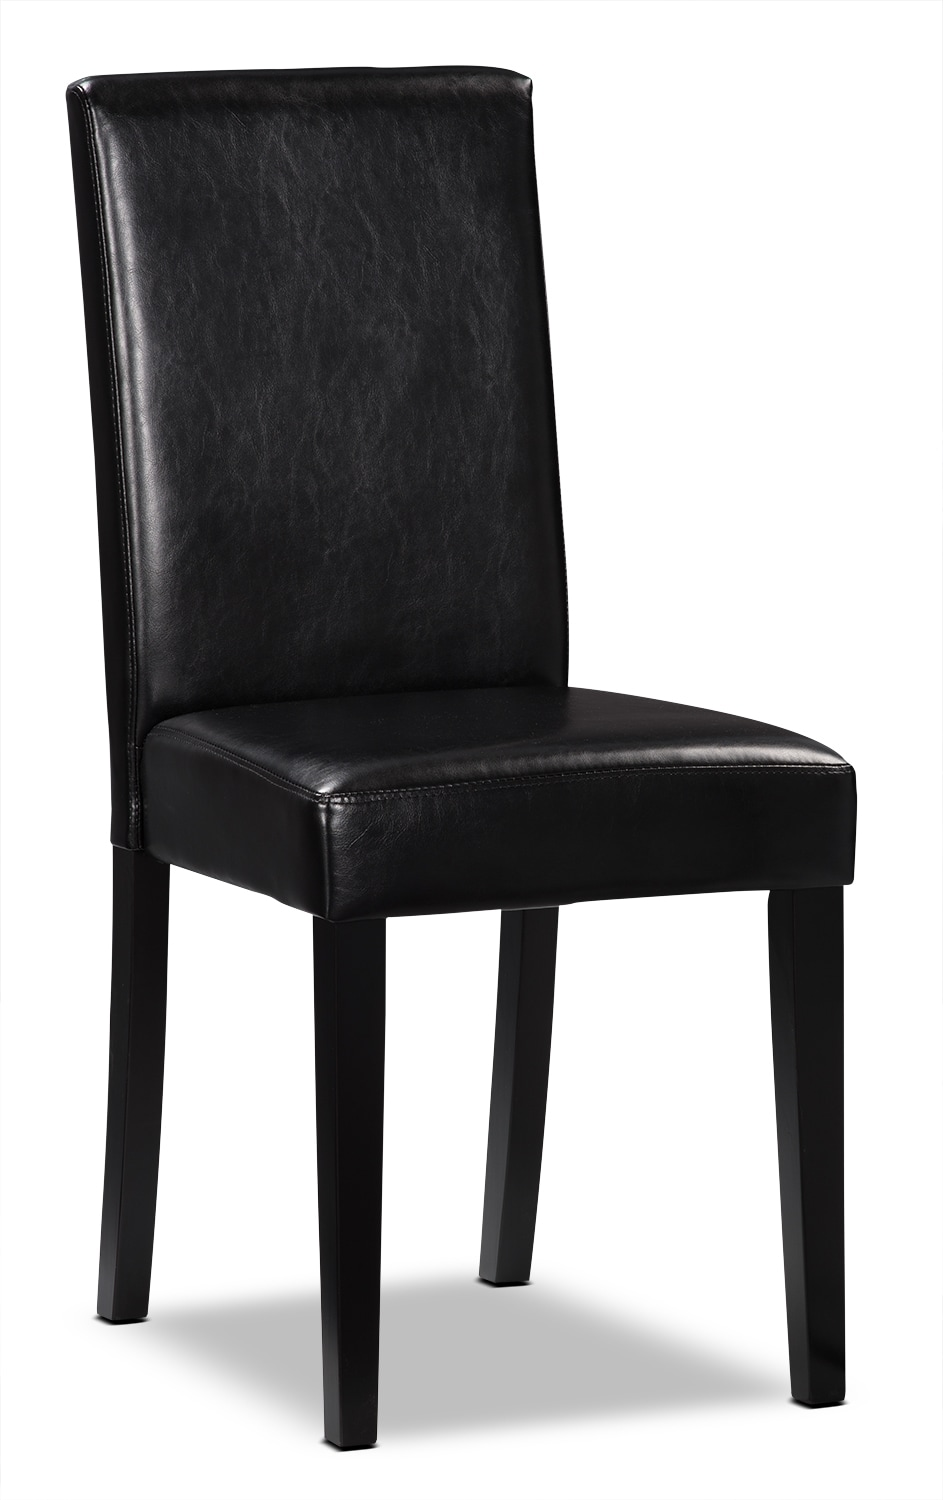 Black Faux Leather Accent Dining Chair